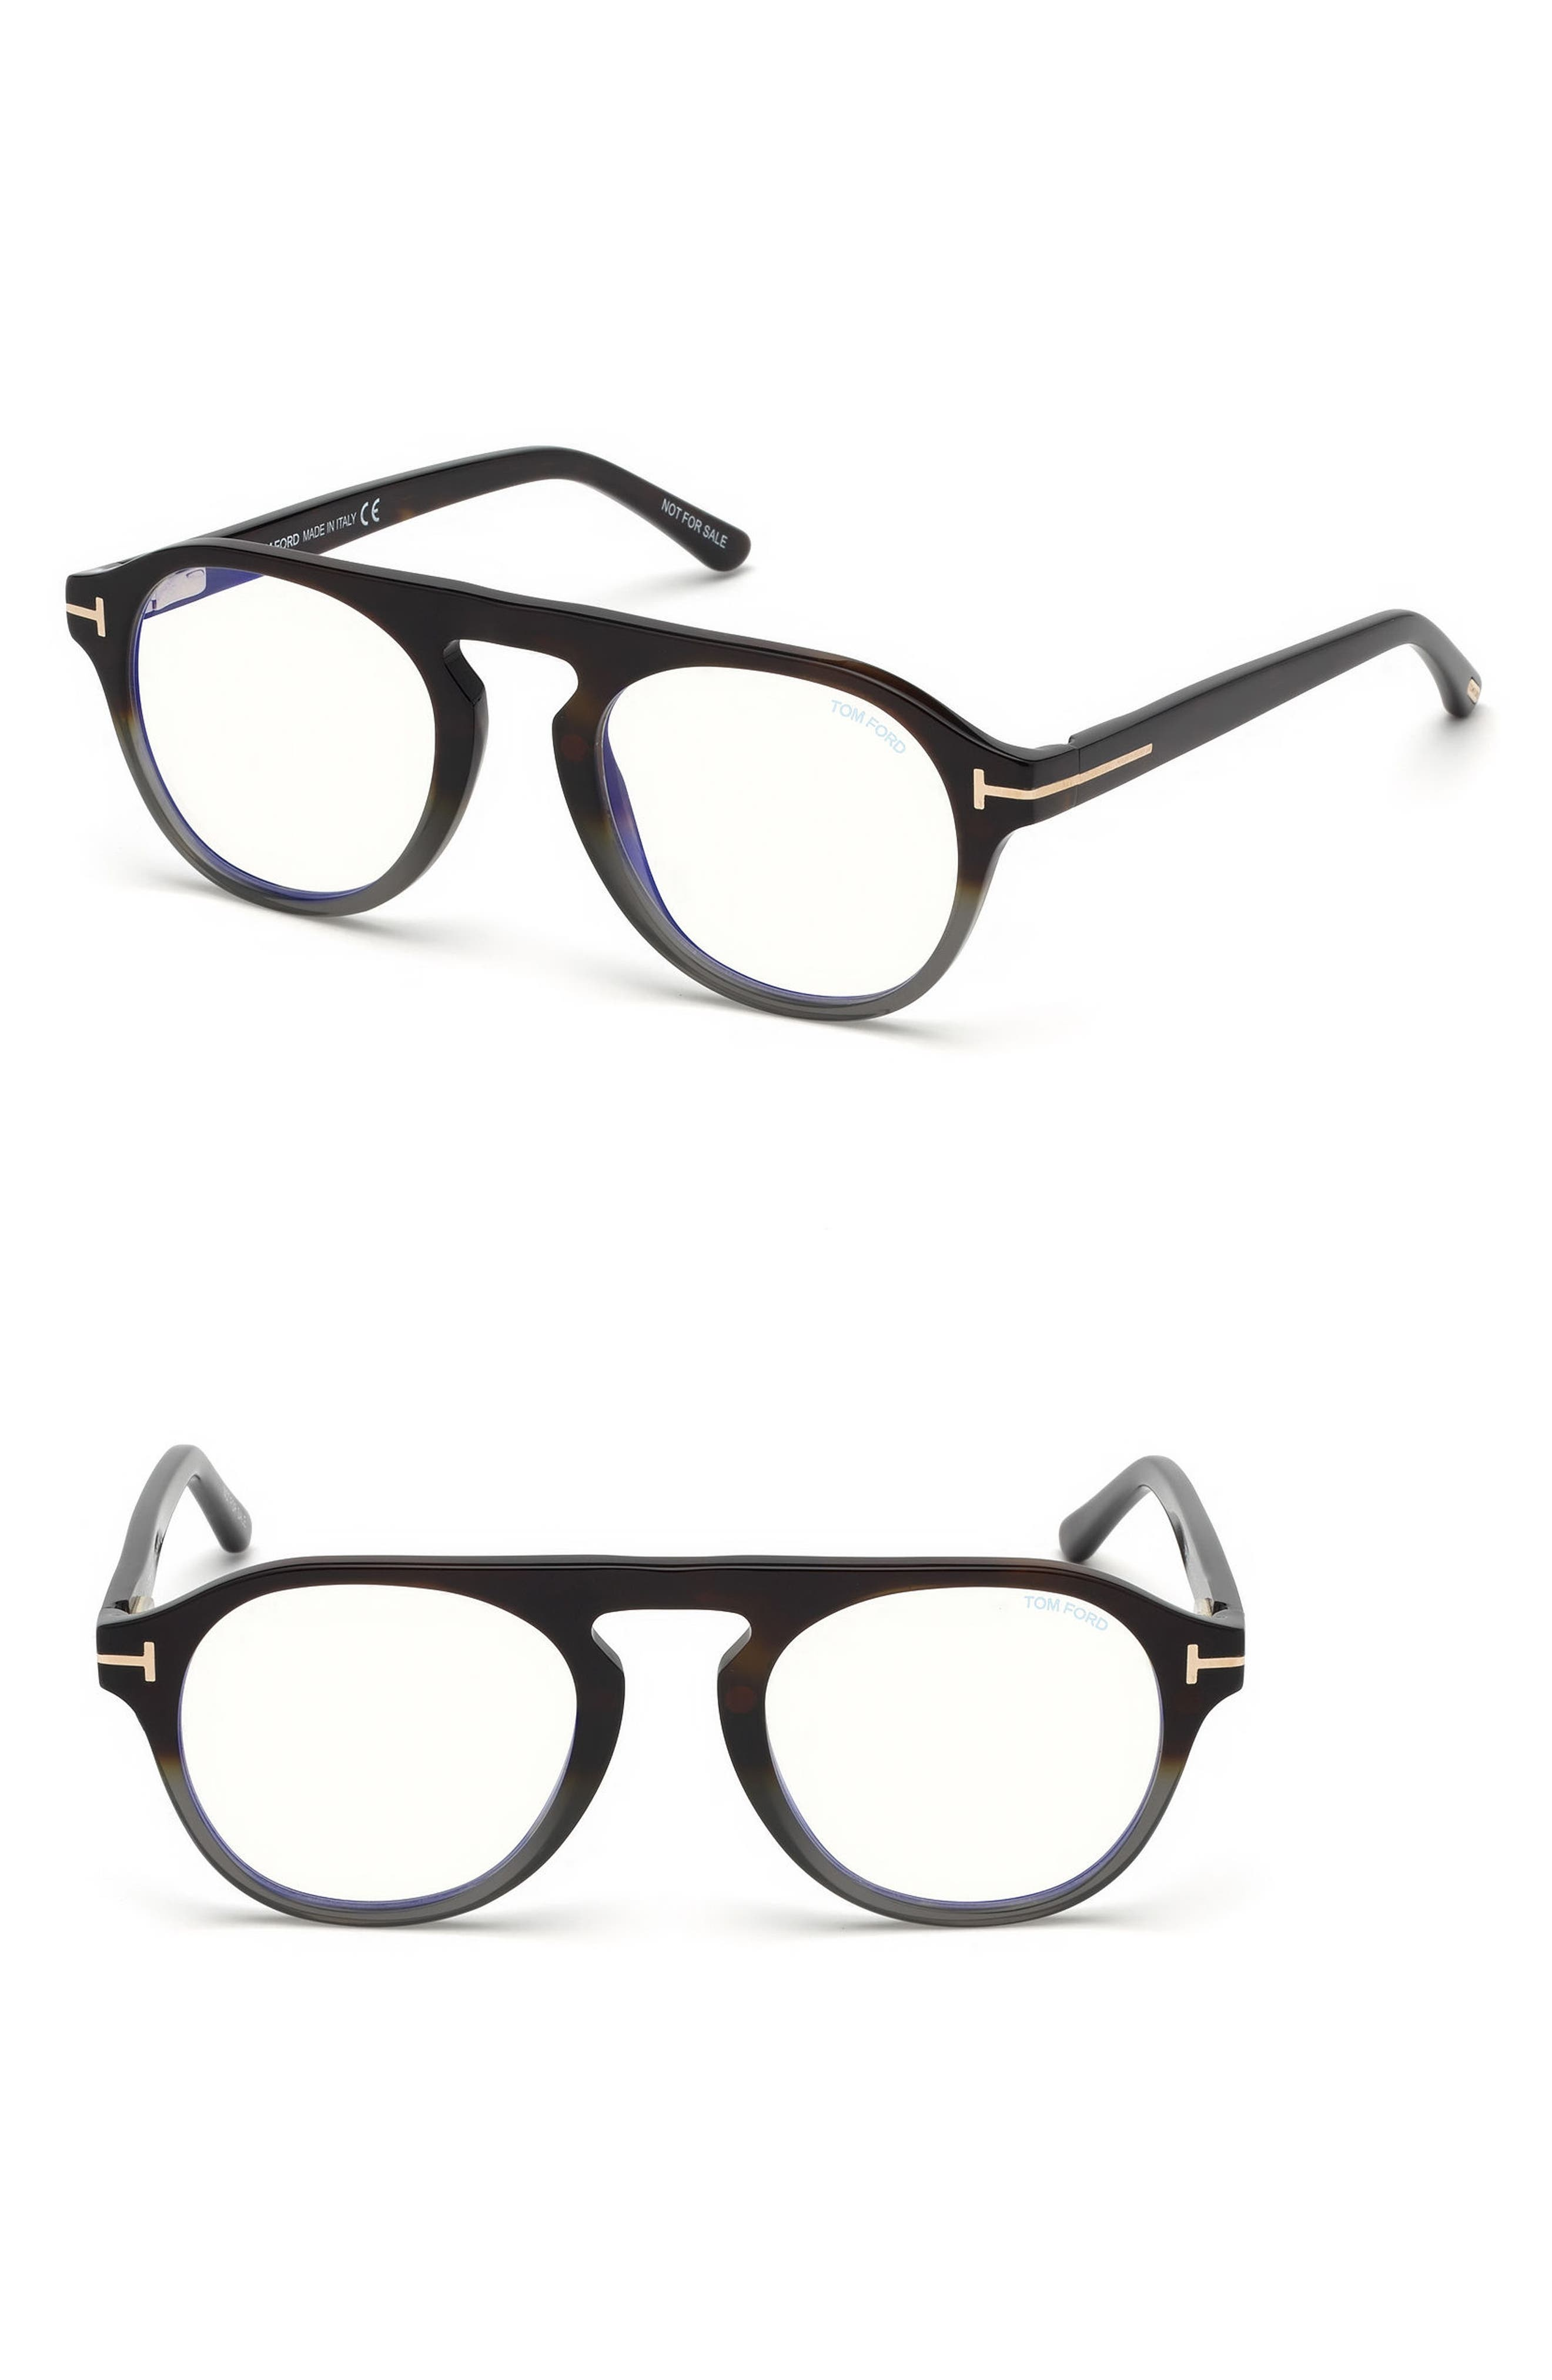 TOM FORD 49mm Blue Light Blocking Glasses with Clip-On Lens, Main, color, GREY HAVANA